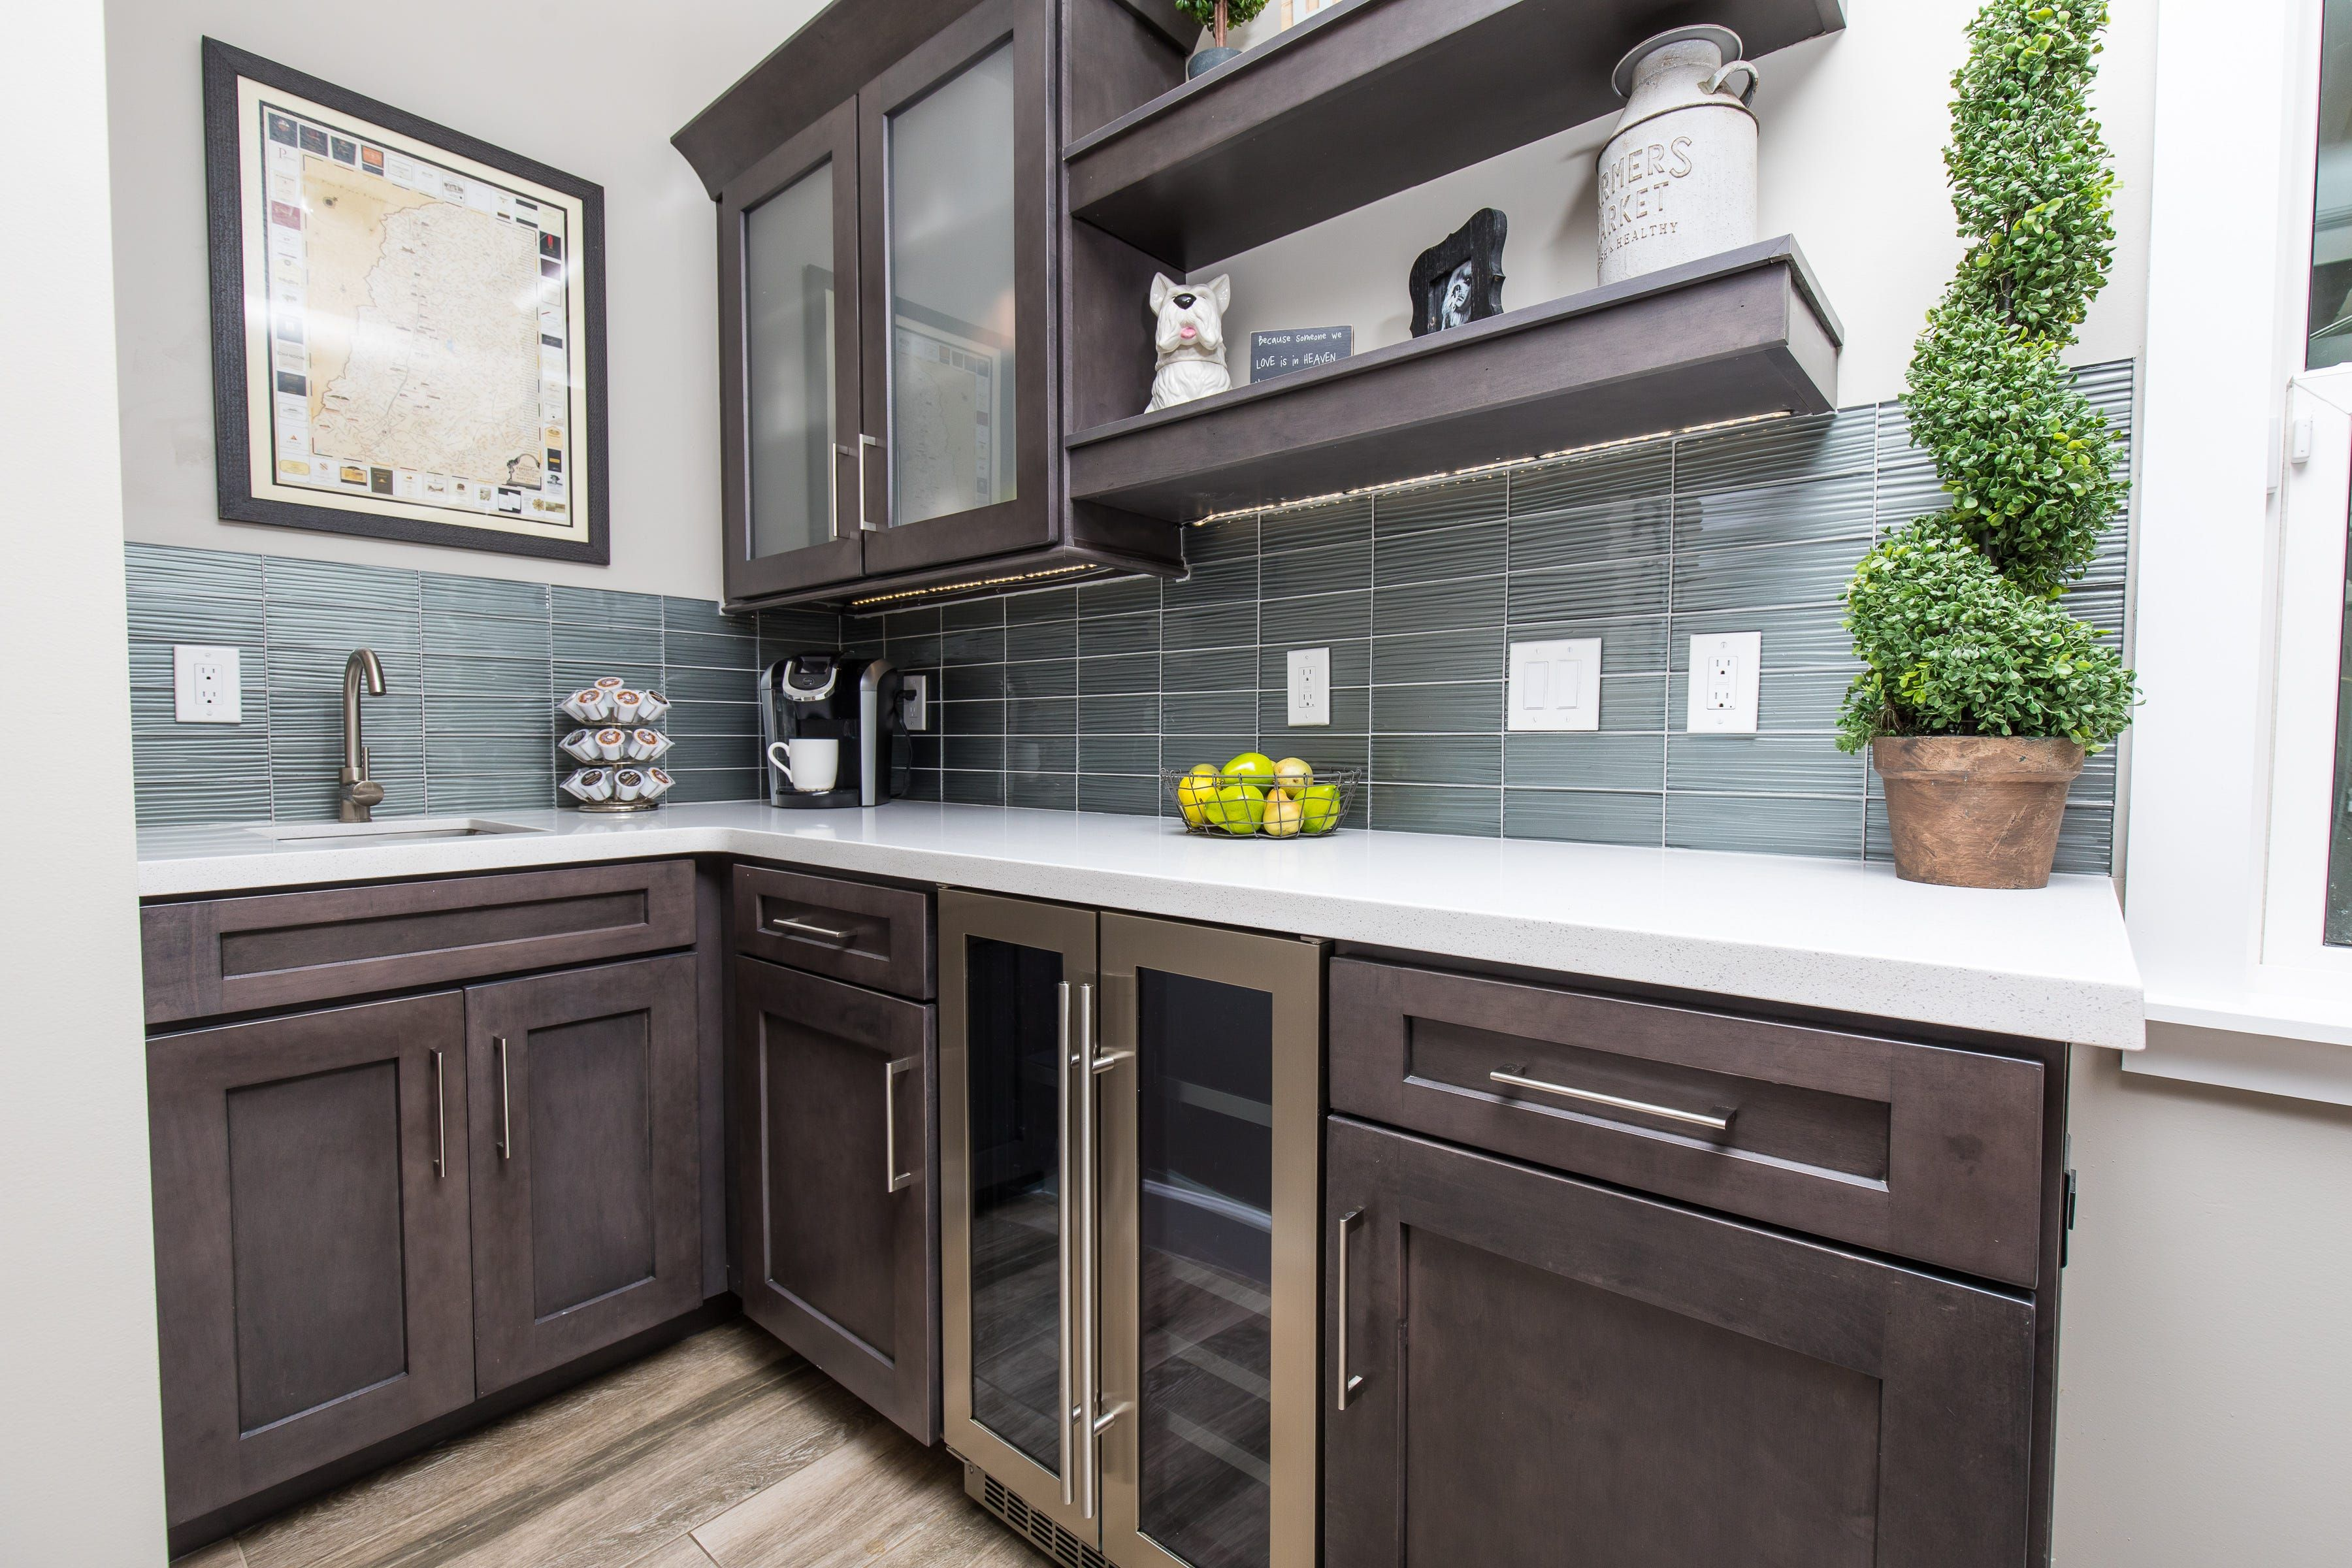 Slate Coffee And Wine Bar With Open Shelving Cabinets Com Kitchen Remodel Small Slate Kitchen Kitchen Remodel